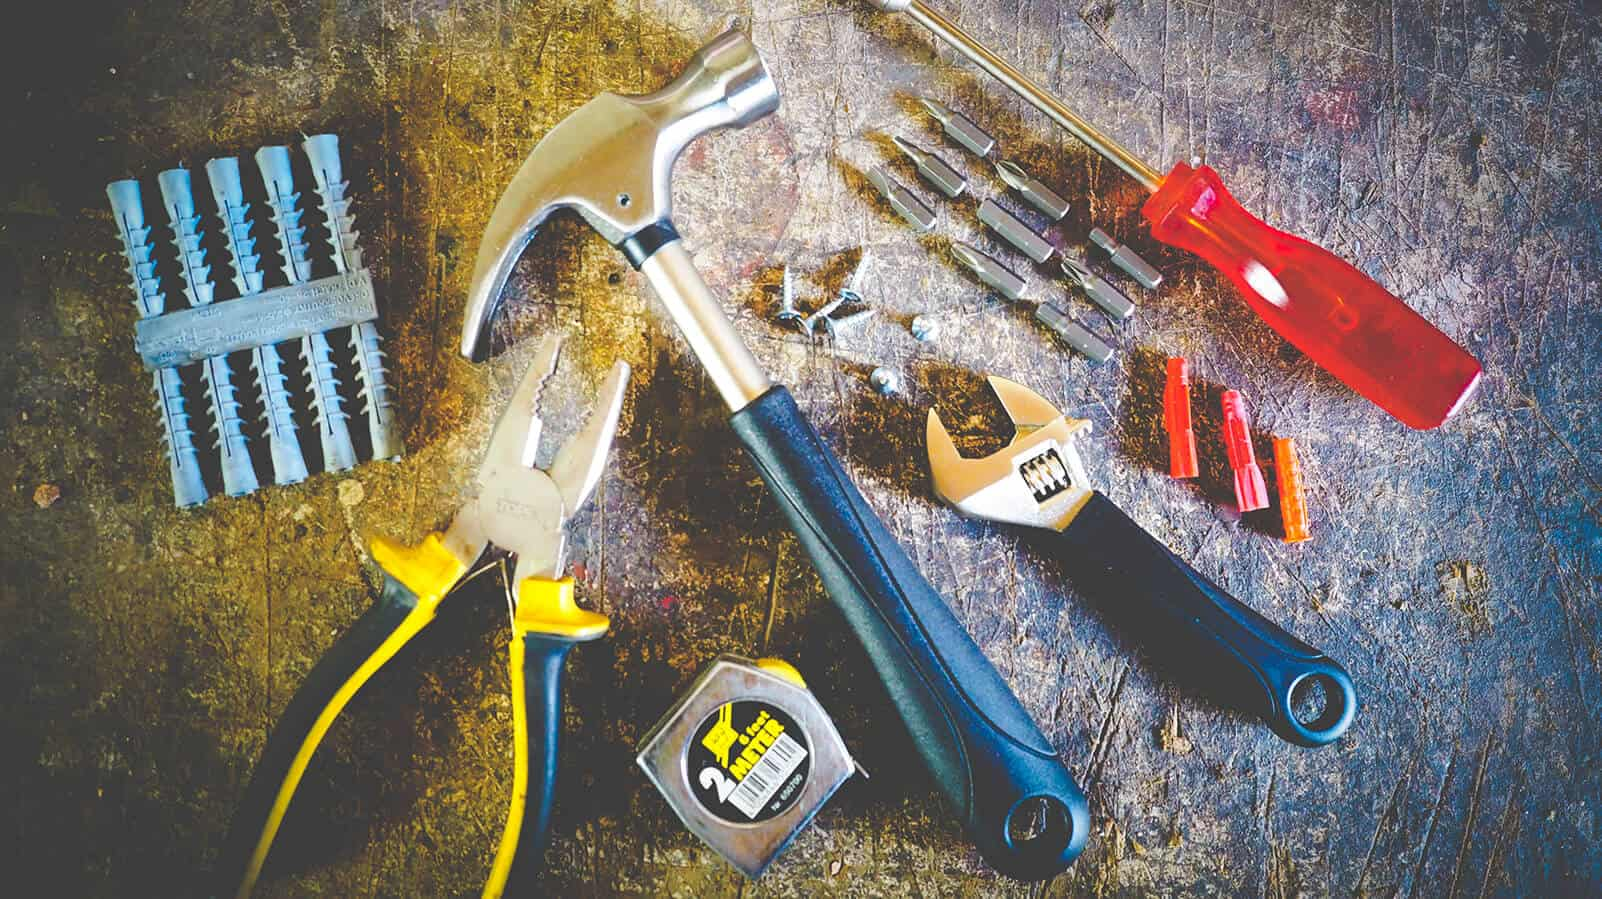 Tools to fix your garage door yourself